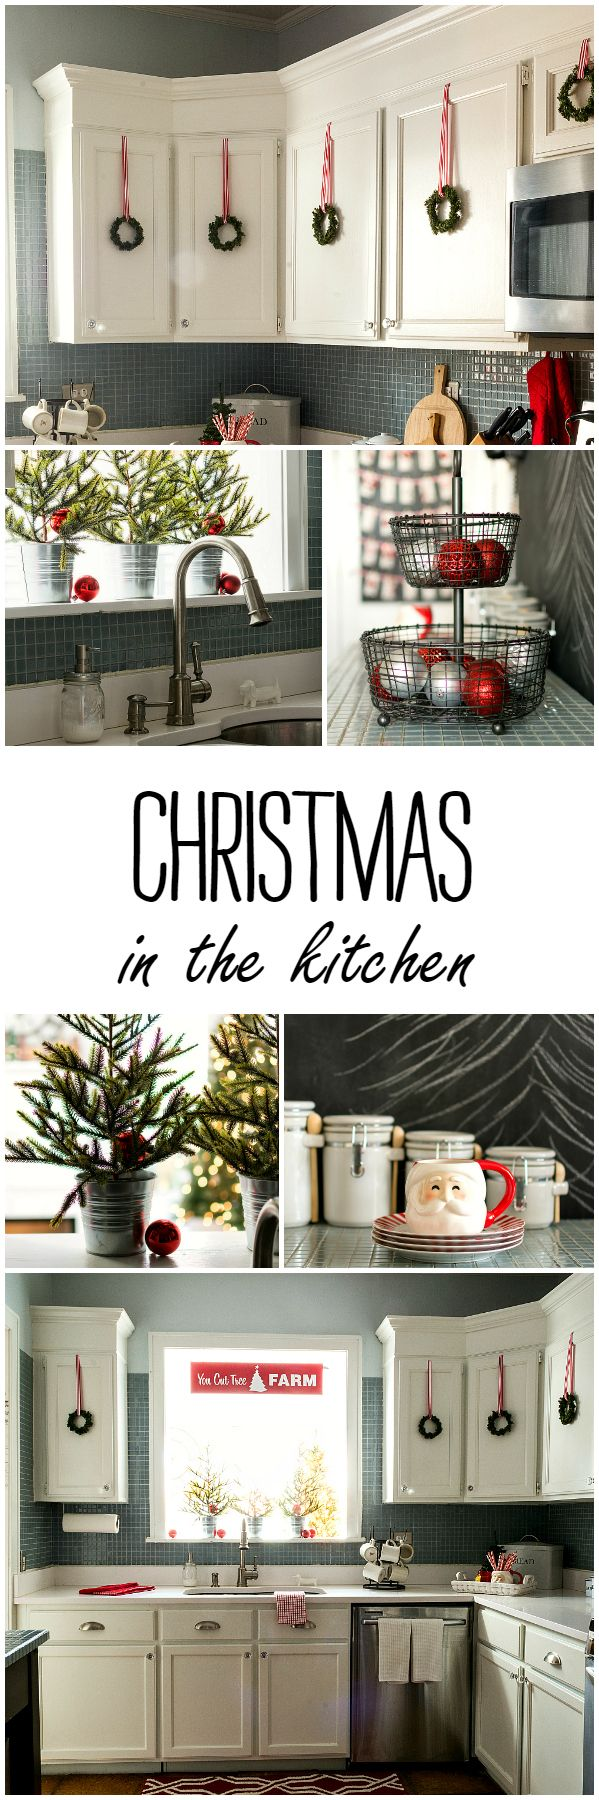 christmas in the kitchen christmas kitchen kitchens and holidays christmas kitchen decorating ideas